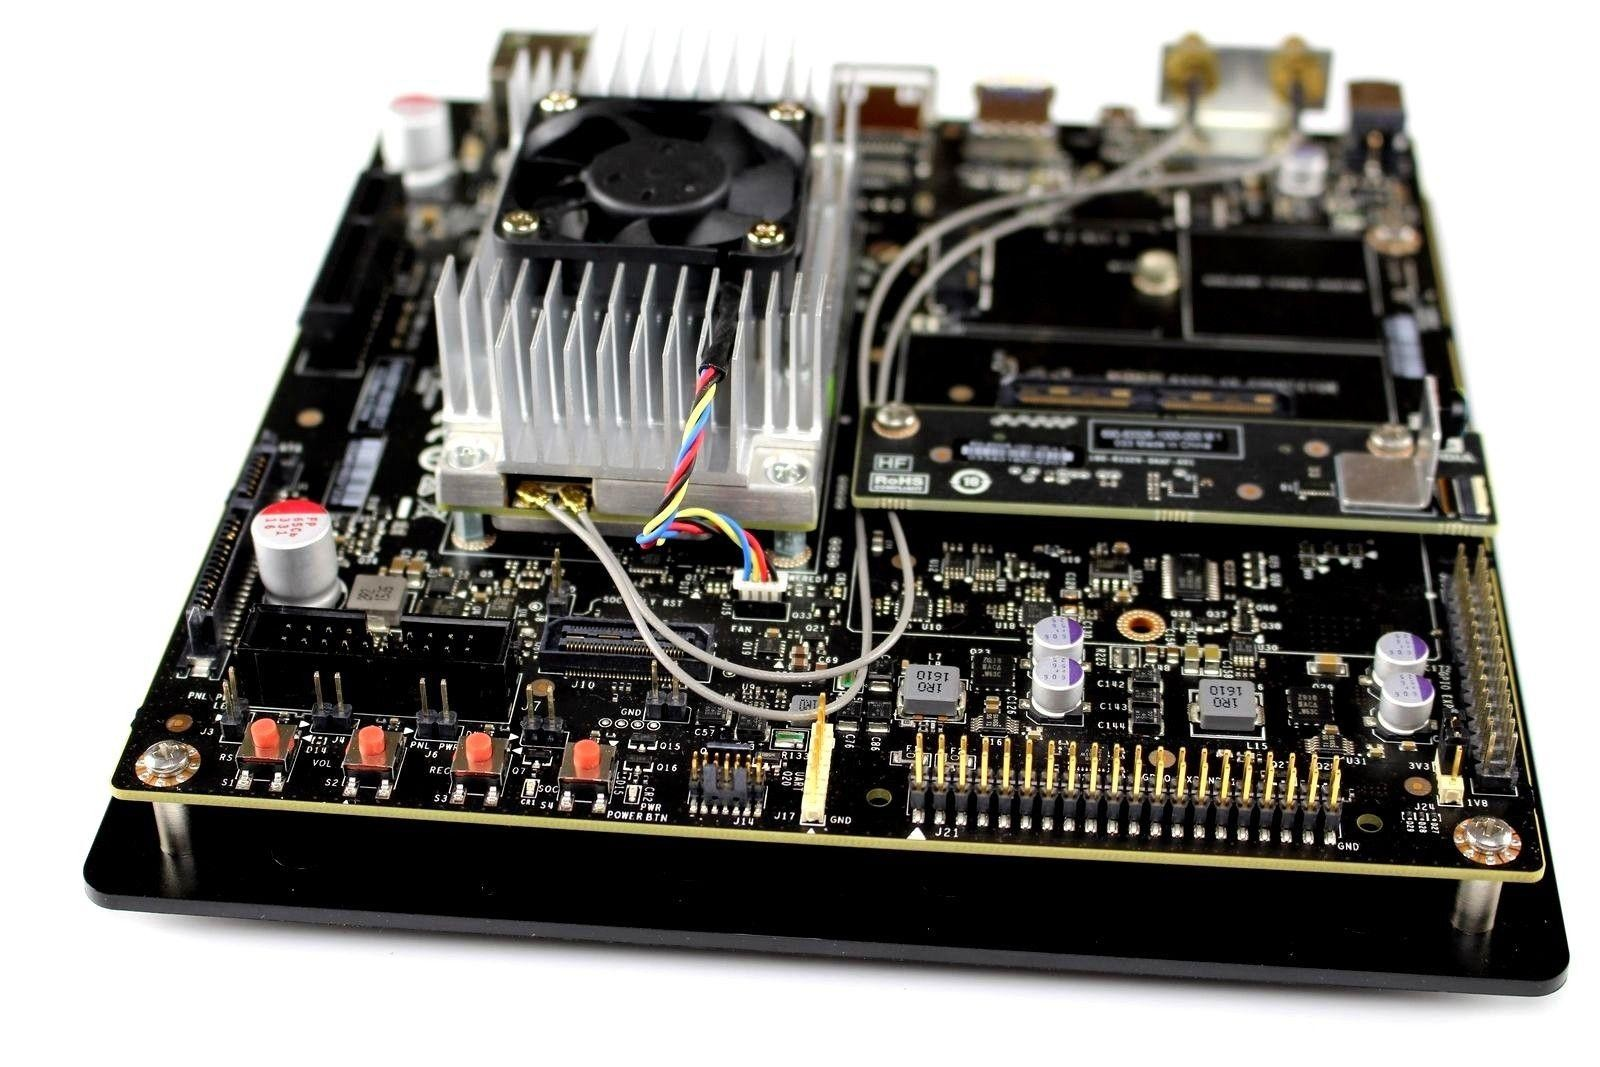 The NVIDIA Jetson TX2 is the highest performing consumer accessible computer processor on the market, in a low-power and convenient form-factor.